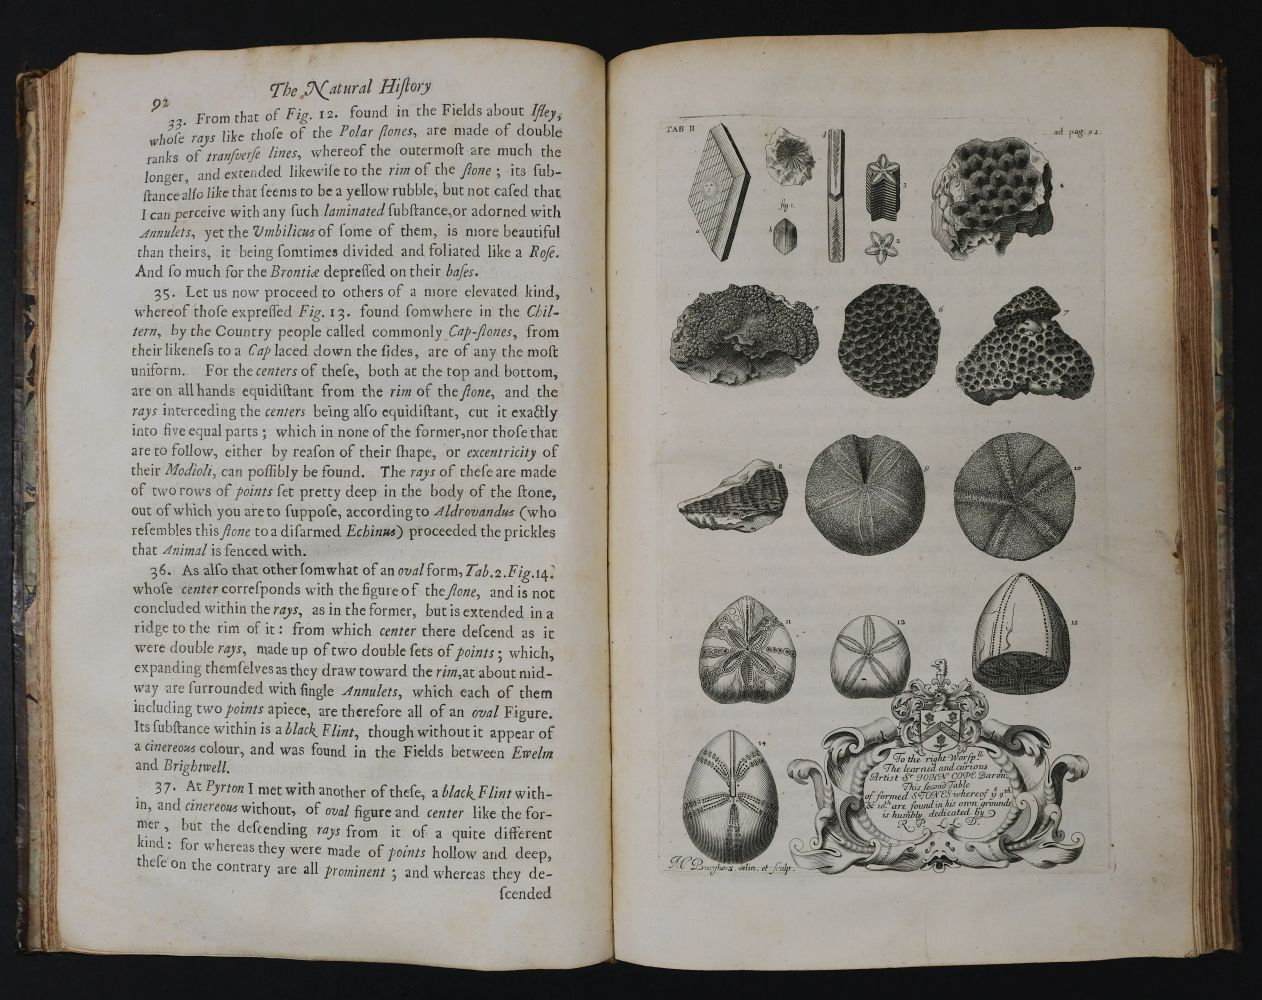 Plot (Robert). The Natural History of Oxfordshire, 1677 - Image 7 of 11